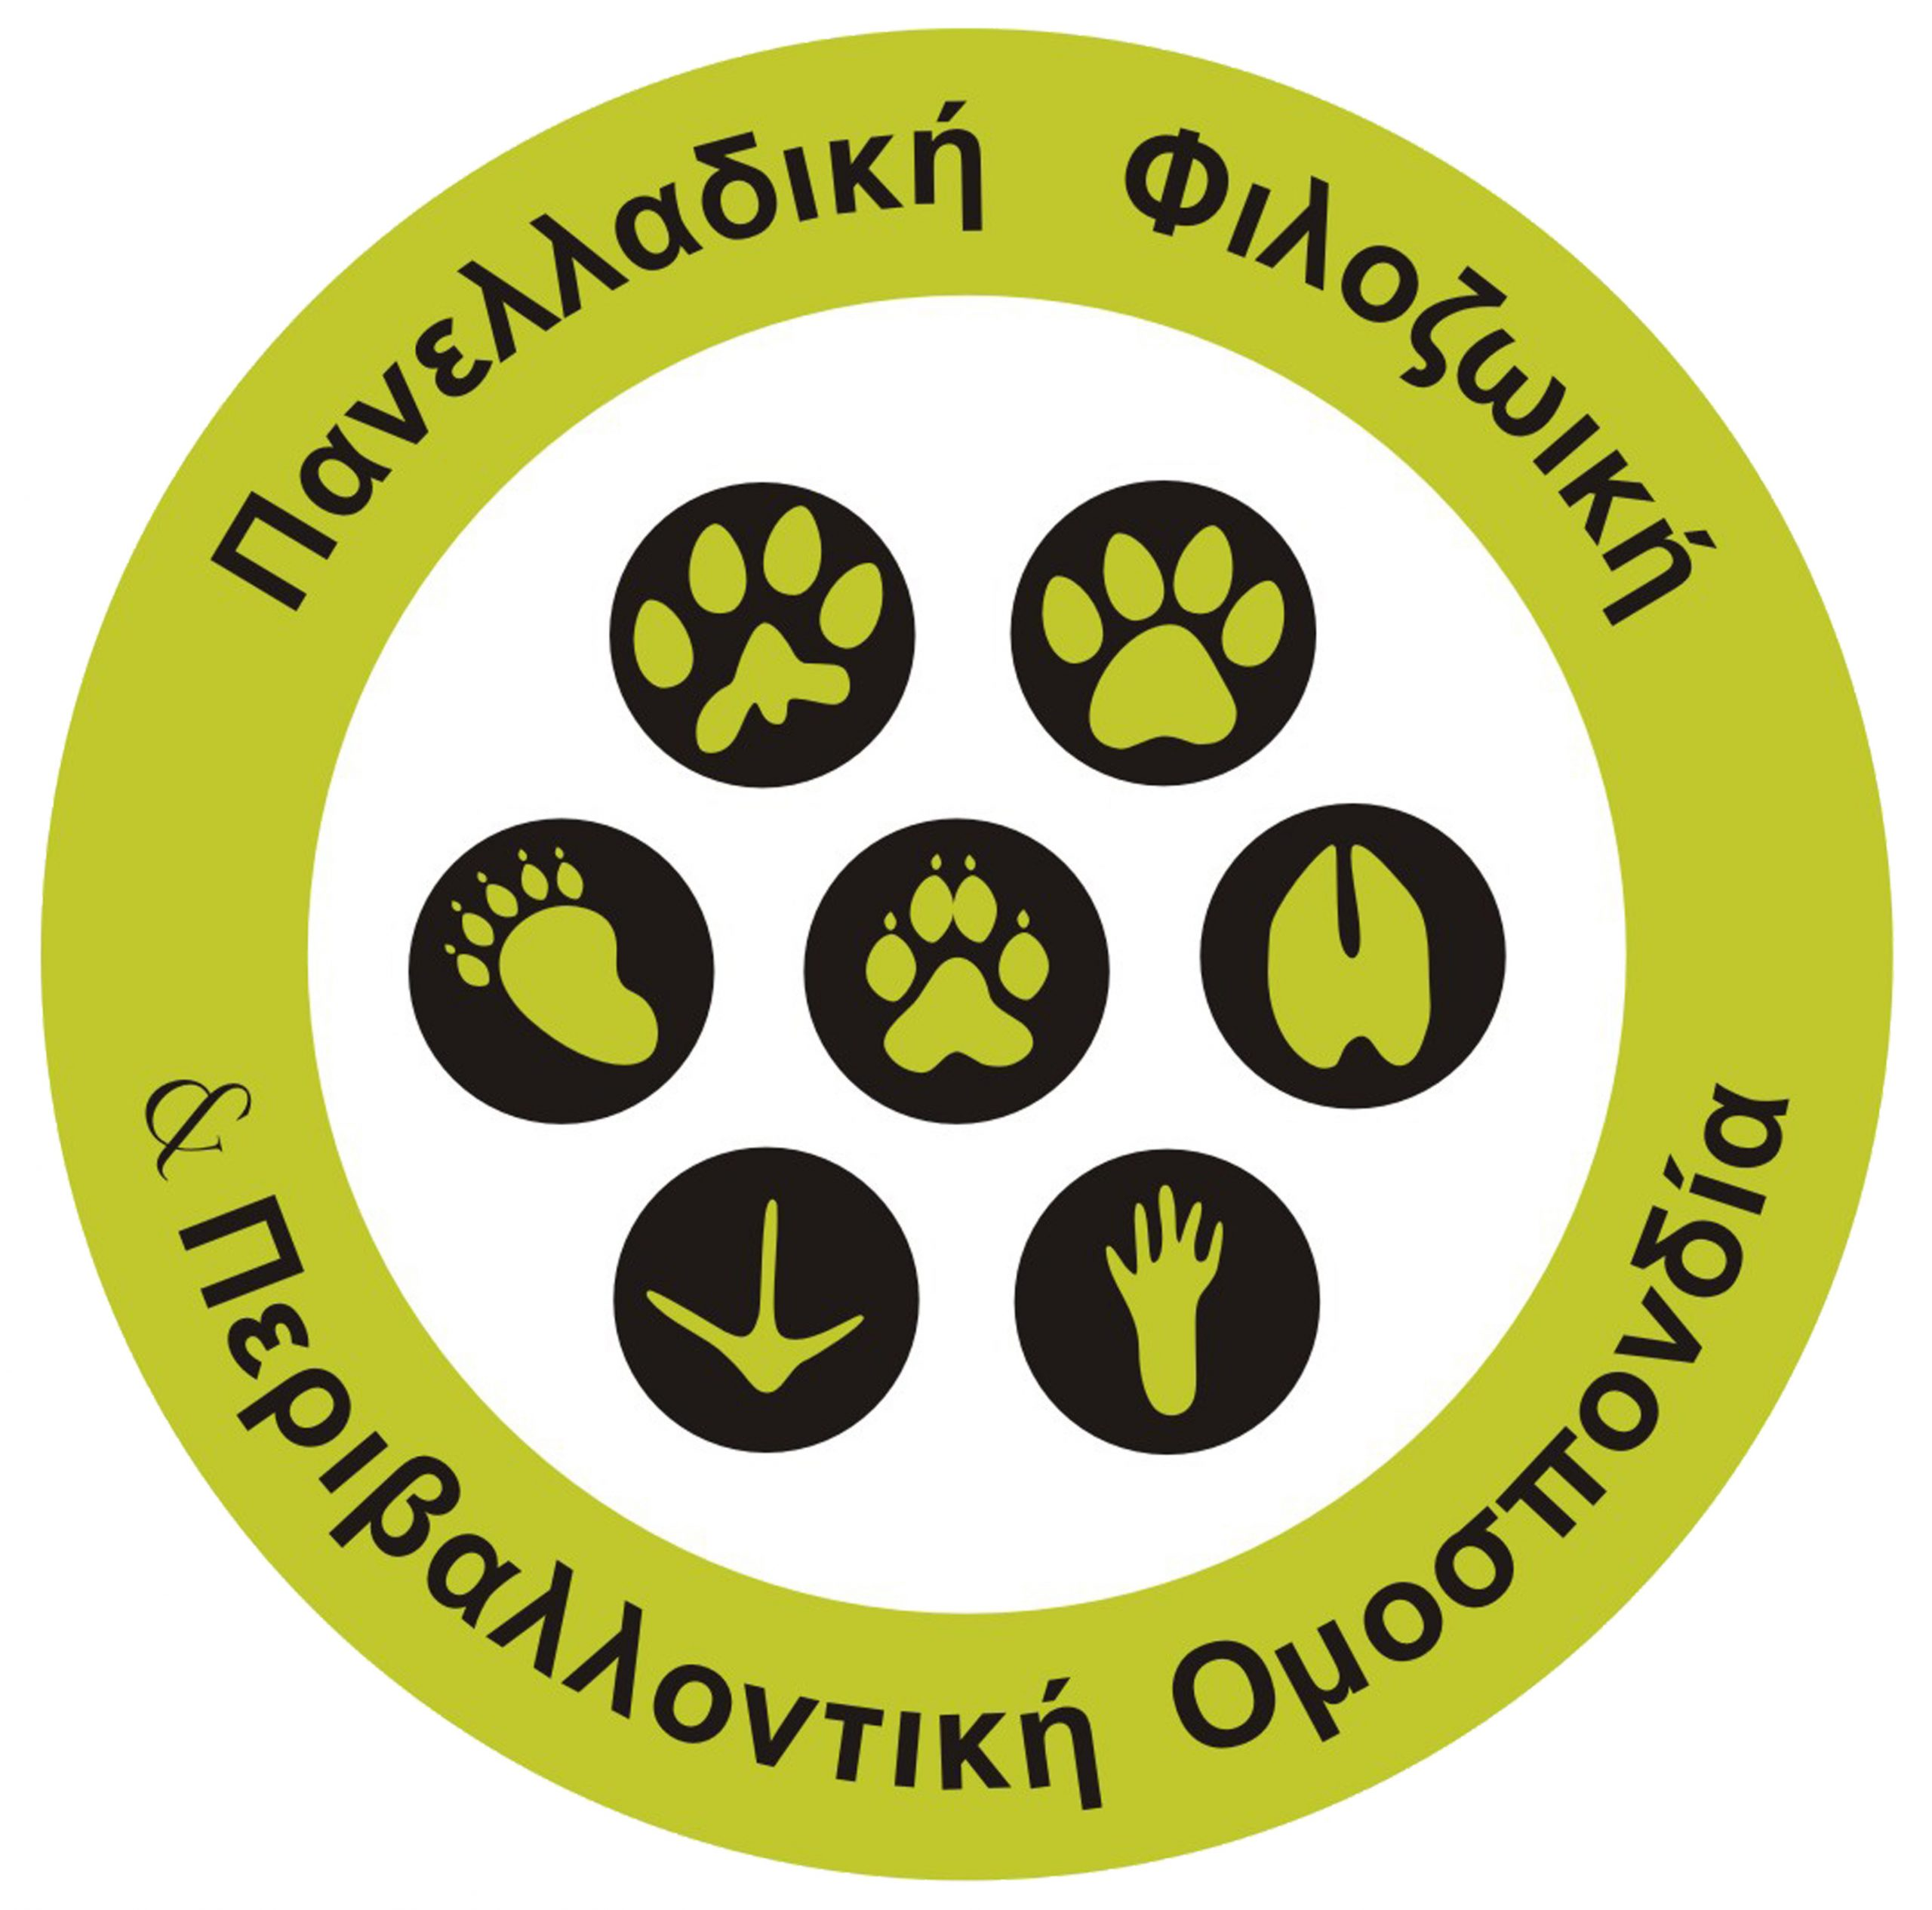 P.F.P.O. Panhellenic Animal Welfare and Environmental Federation